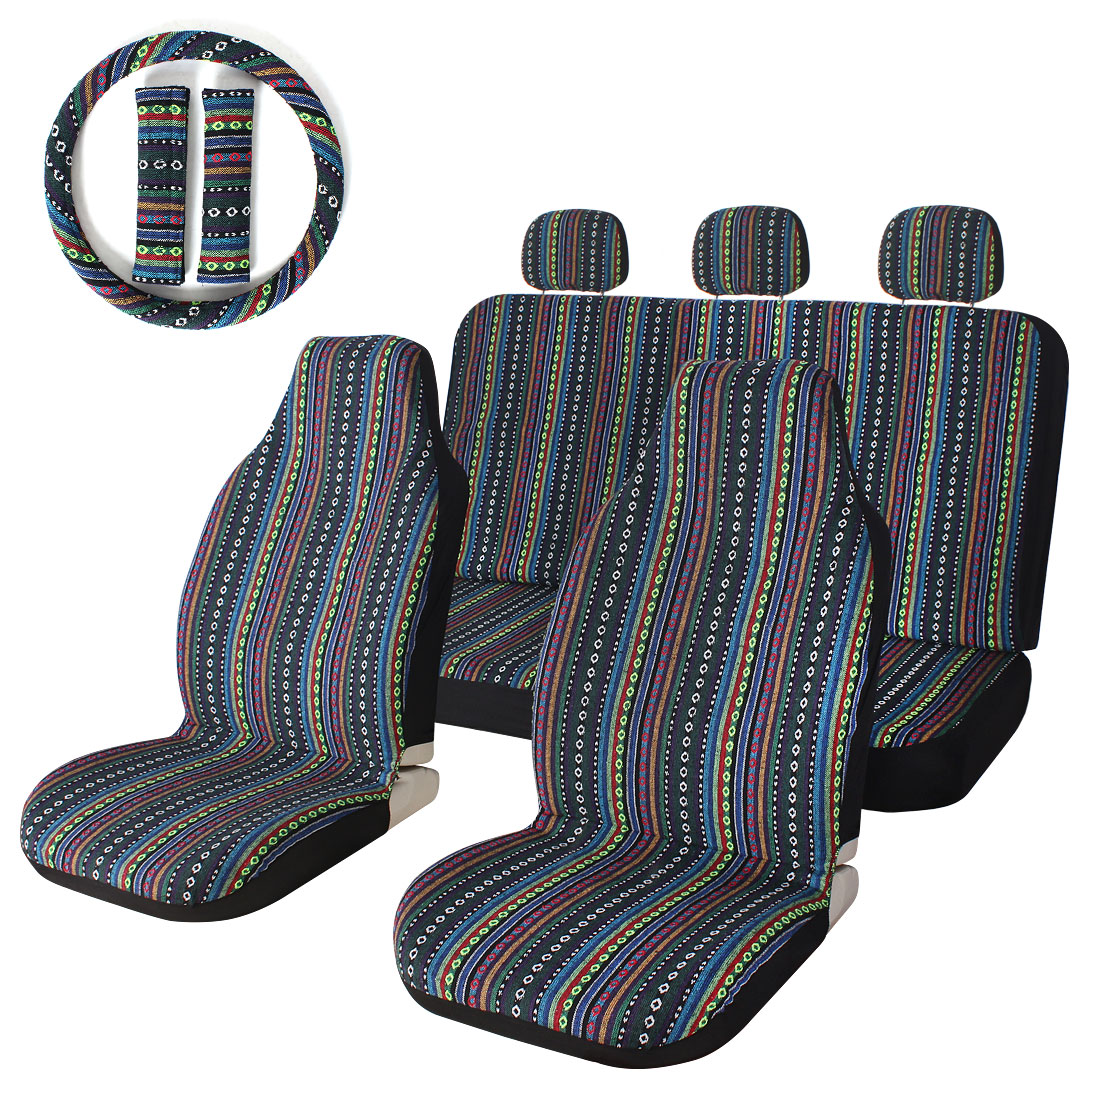 This Car Seat Covers Set Has An Ethnic Style And A Fresh Feel Copap Universal Bucket Feature Fun Southwest Inspired Design Updated